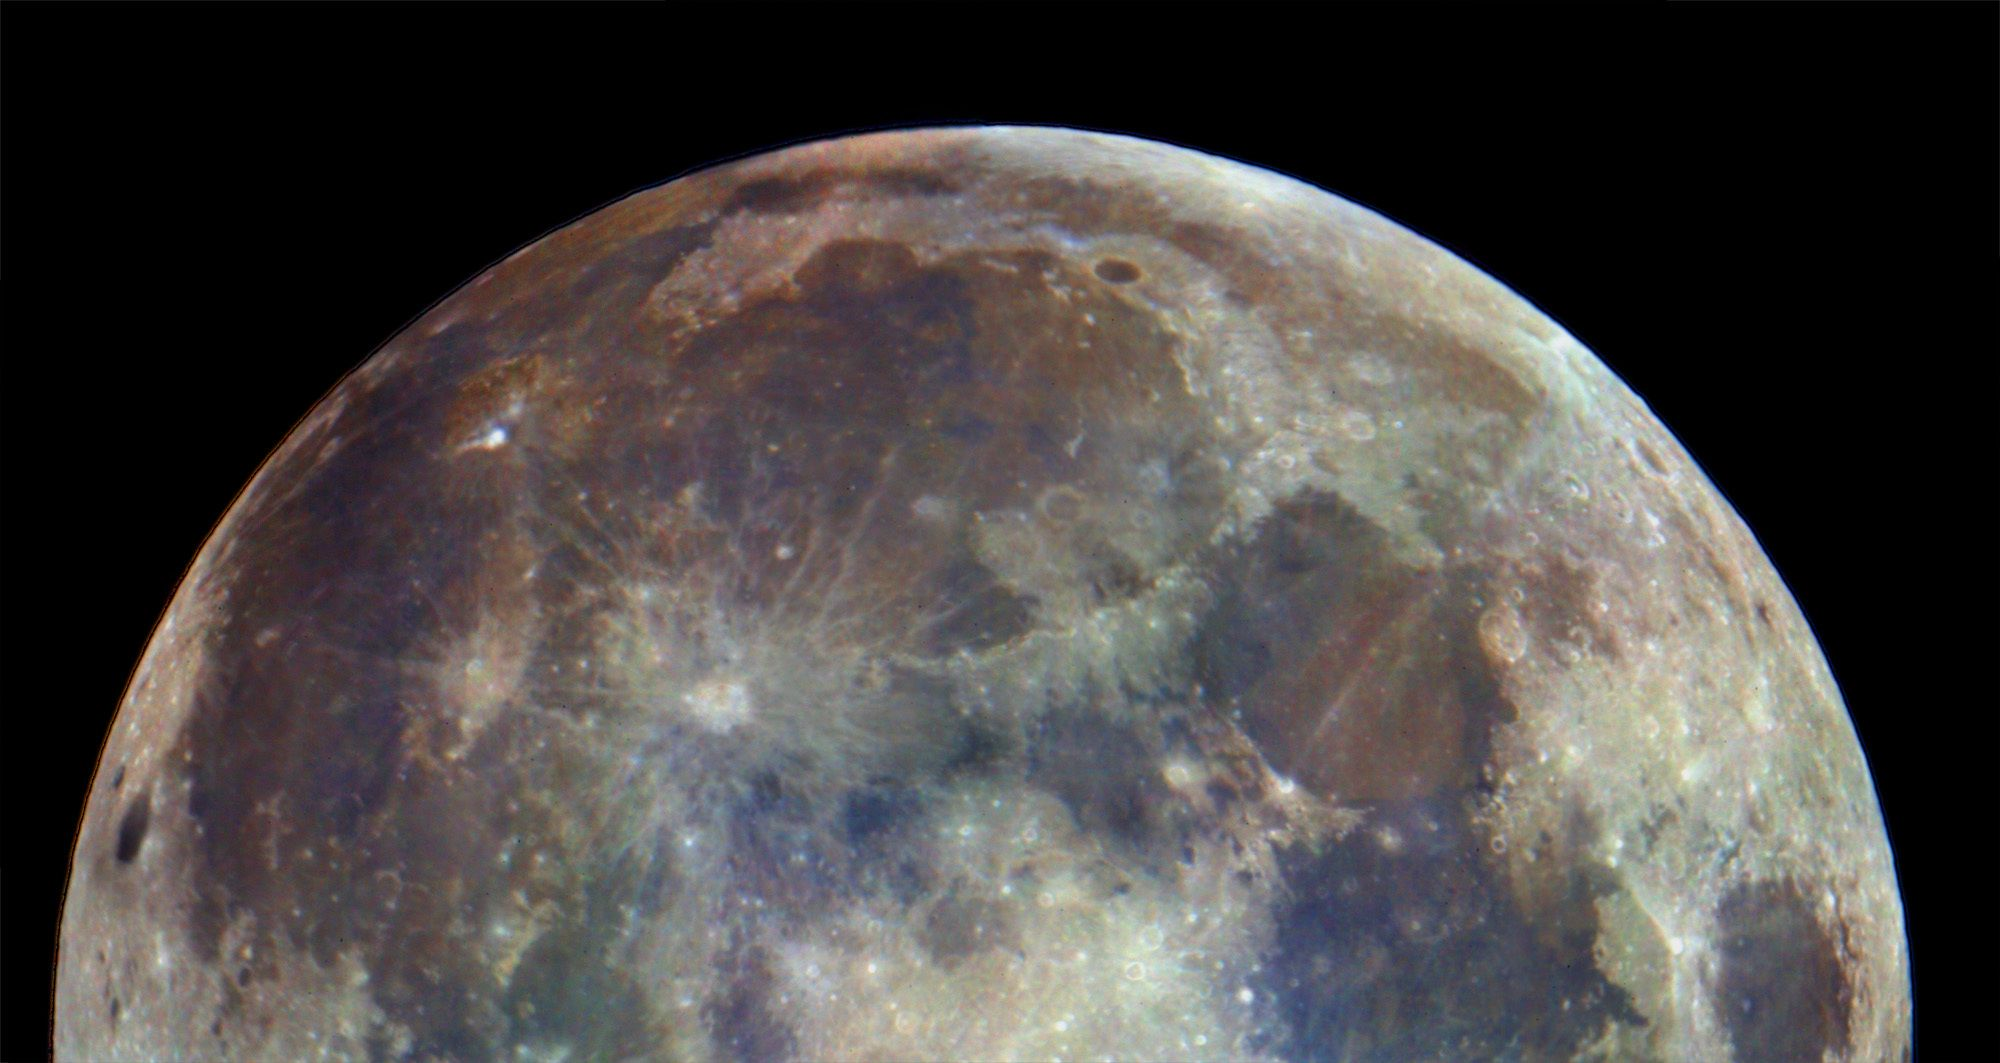 10 Mosaic Moon Picture (Enhanced Color)